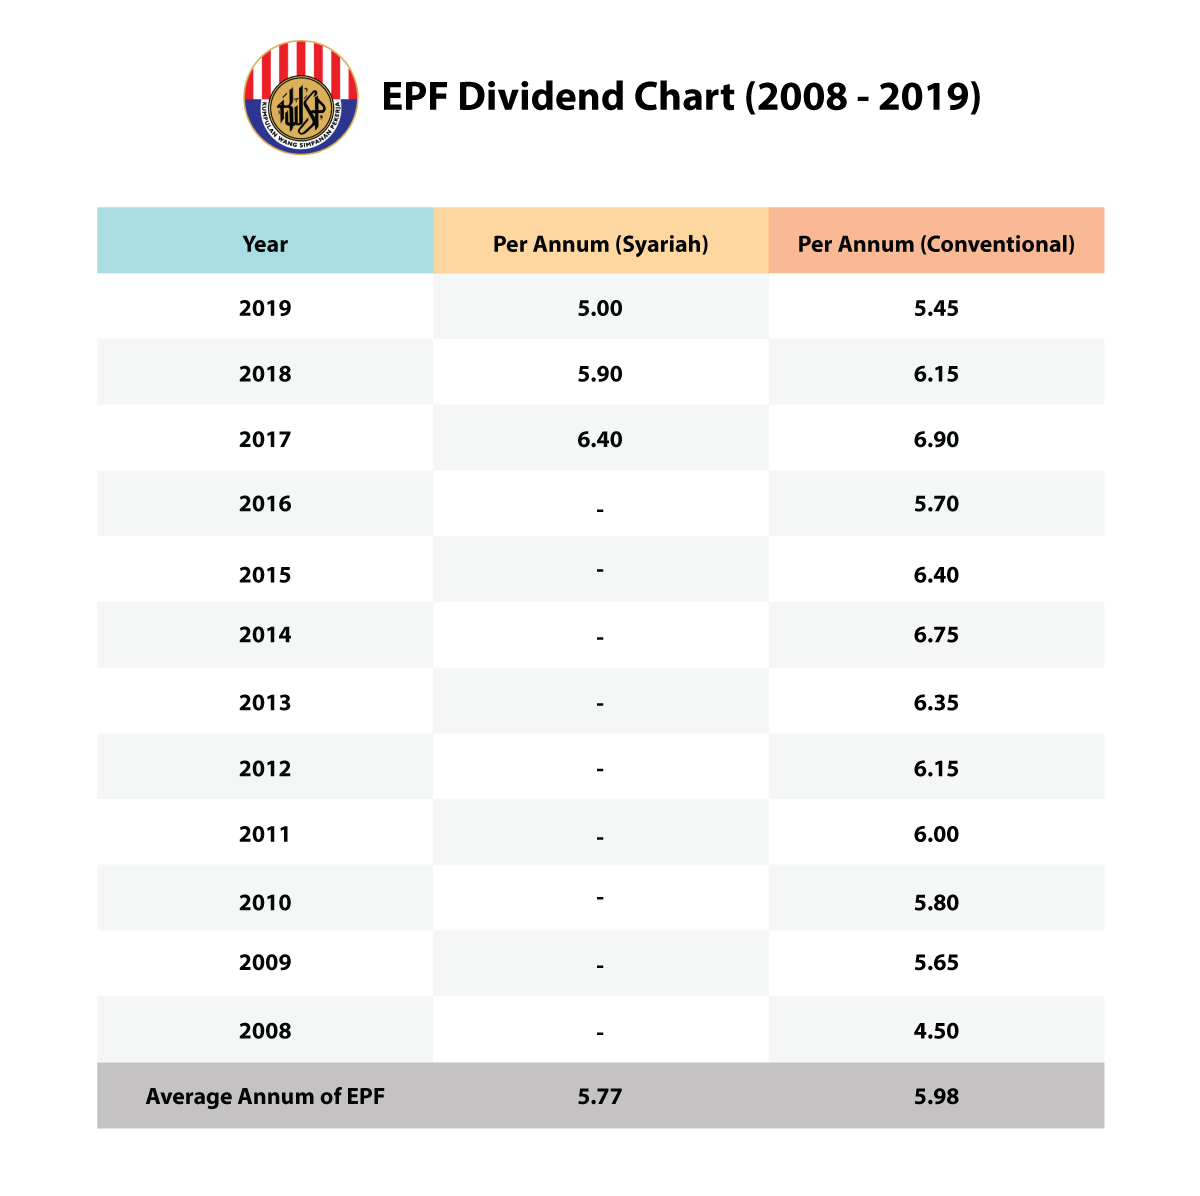 epf dividend table 2019